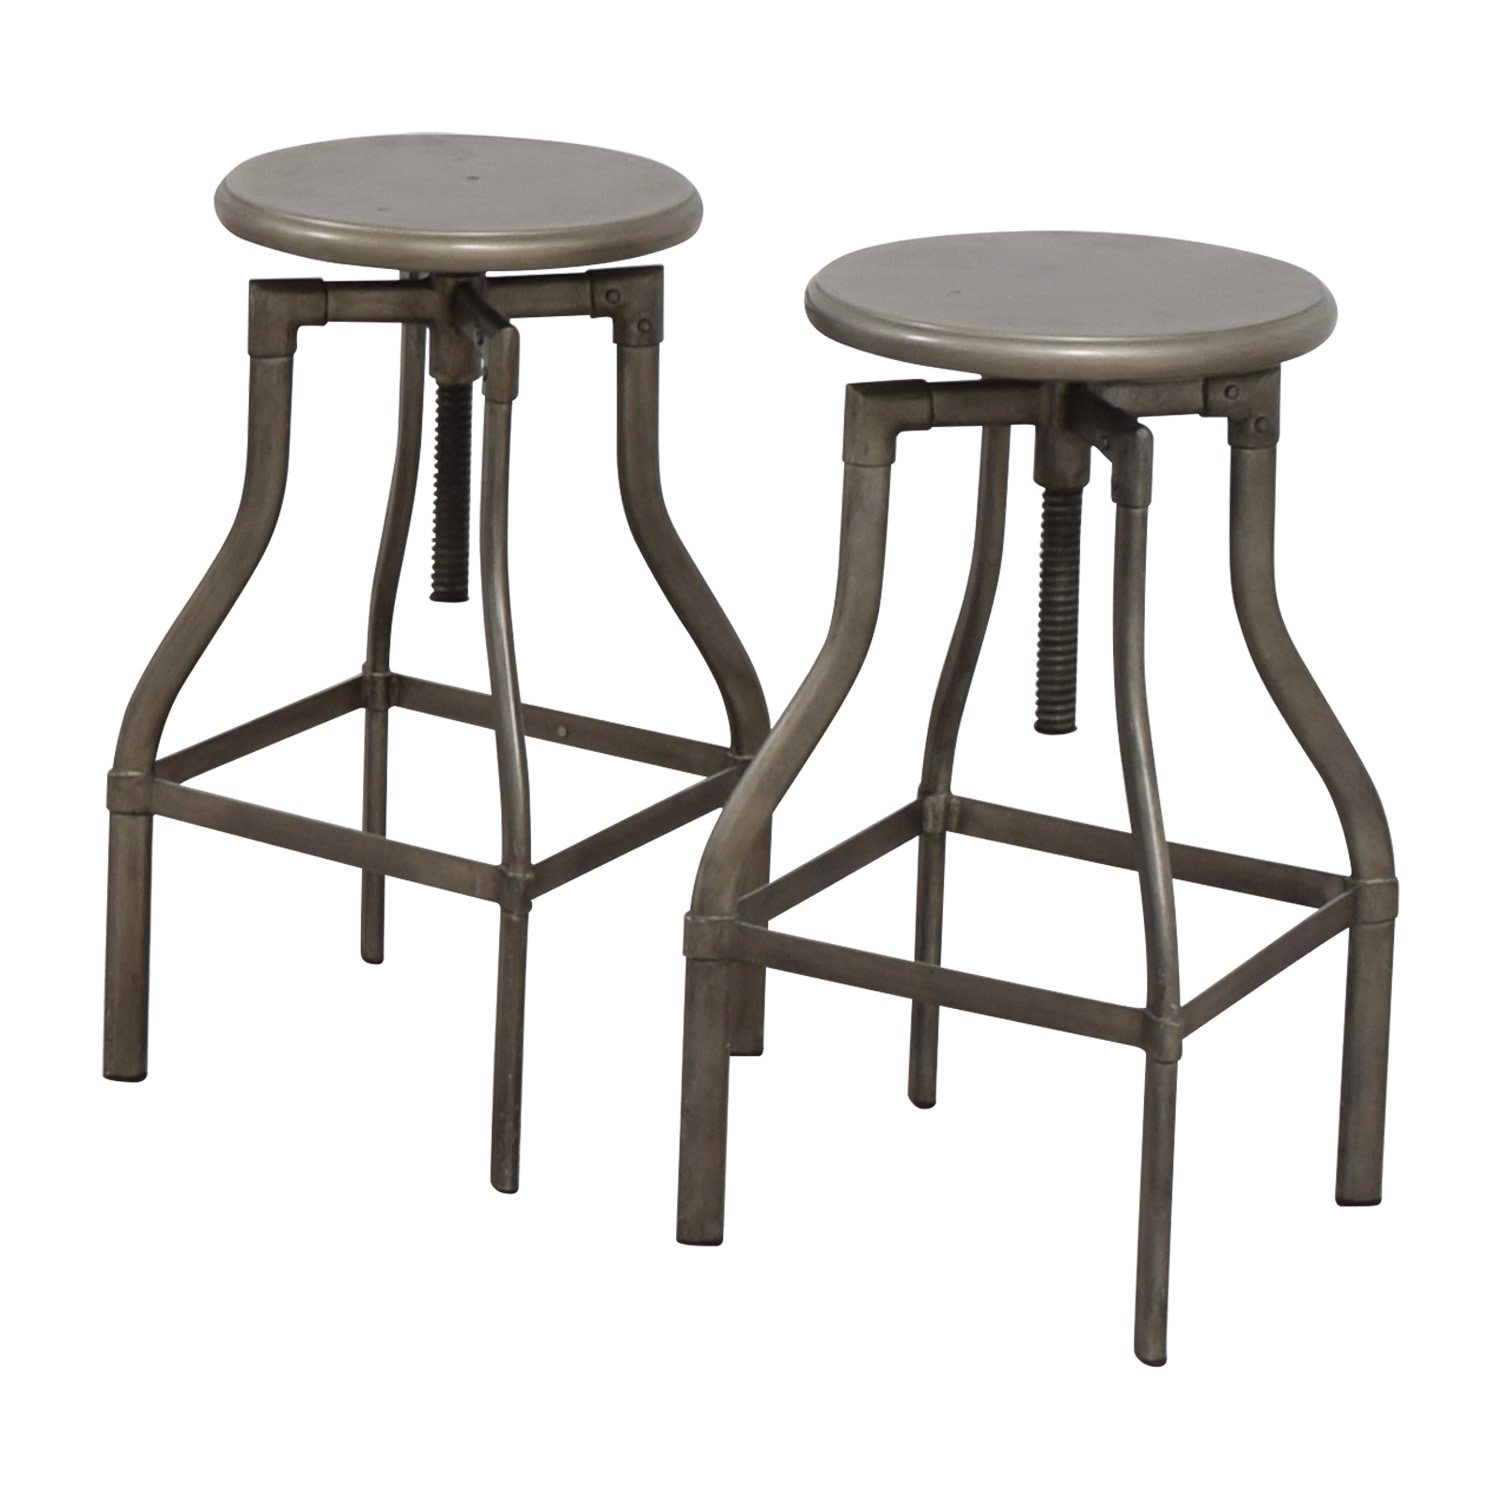 Crate & Barrel Crate & Barrel Turner Bar Stools used